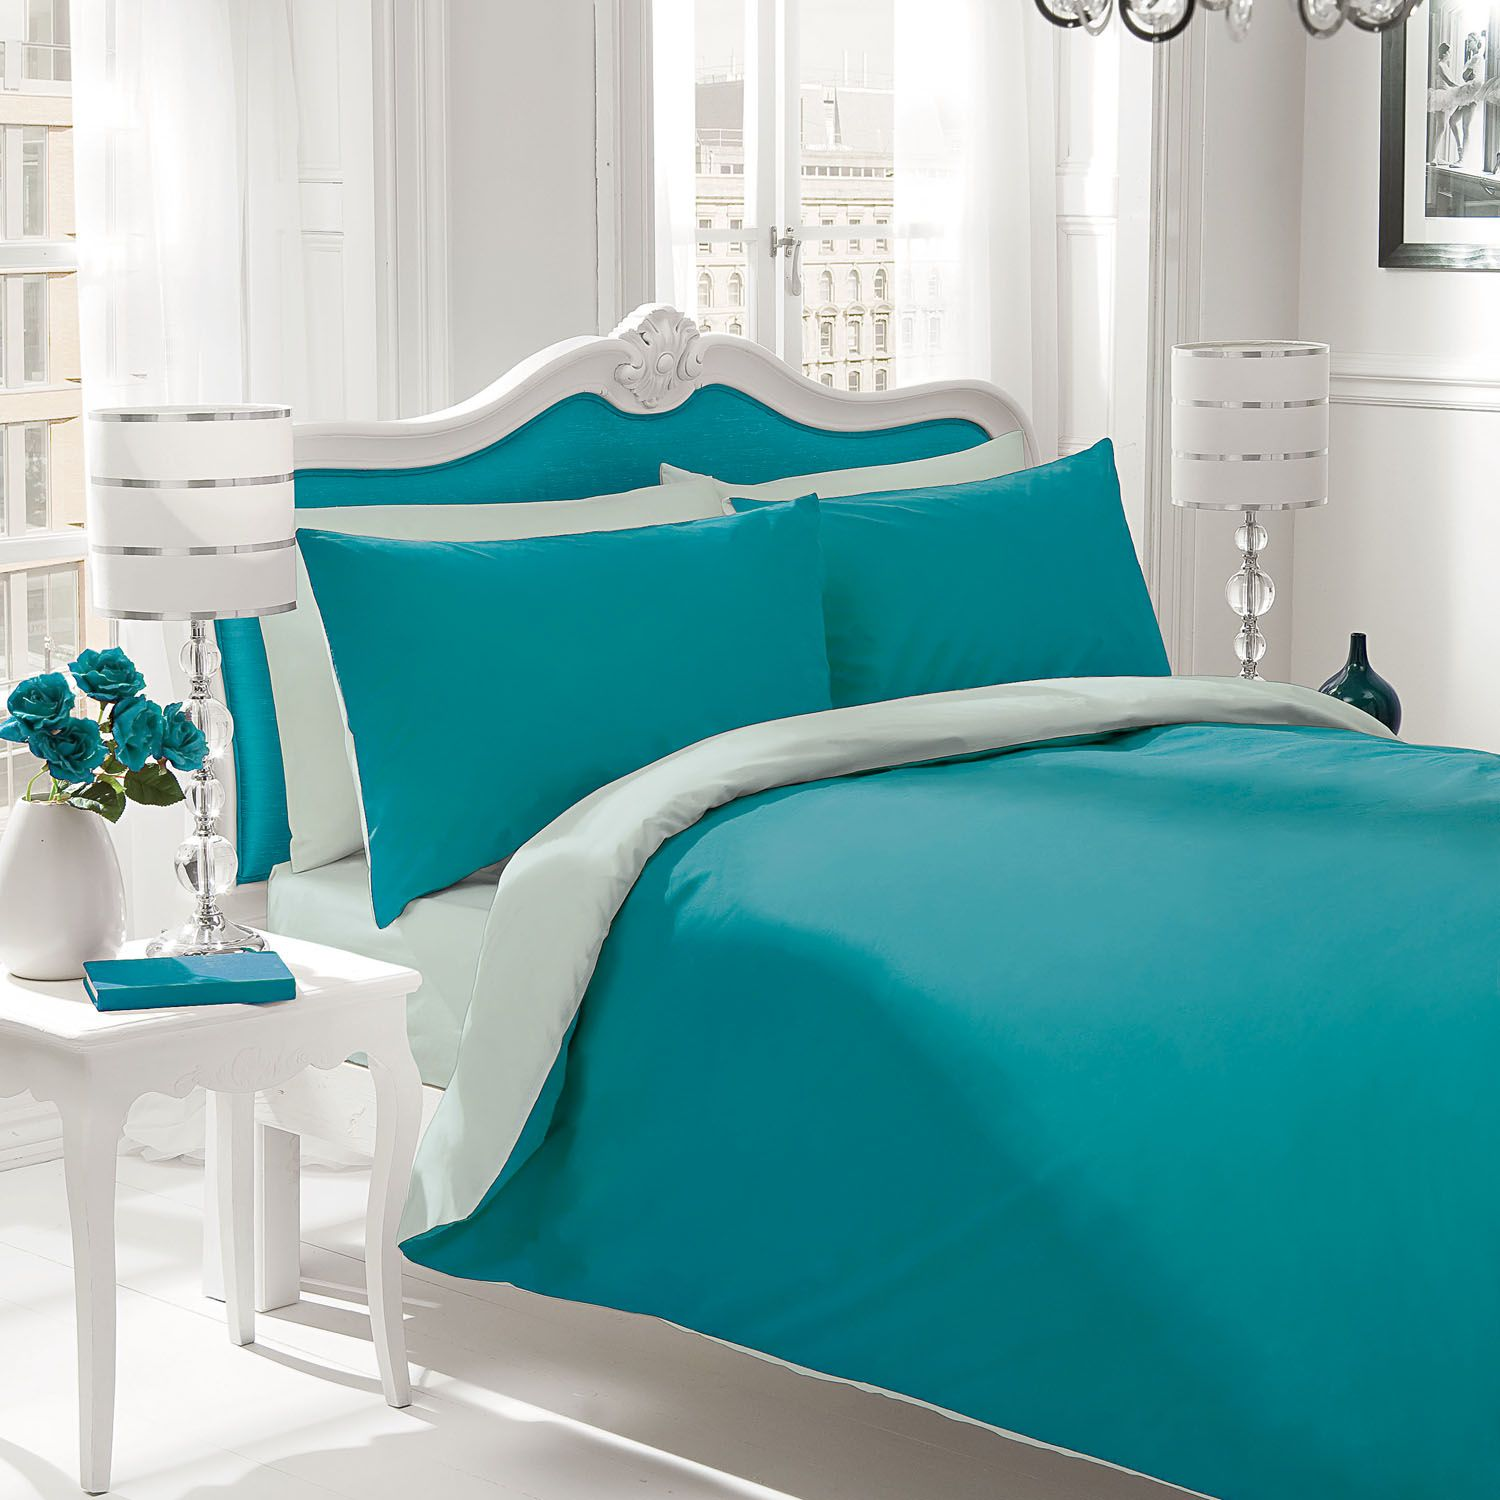 bedspread dog teal nice colored purple large bedspreads design aqua gray and cute decorative of mint sets bedding queen bedroom twin red coral green colorful turquoise bed grey set sale size teenagers for sheets king comforters comforter